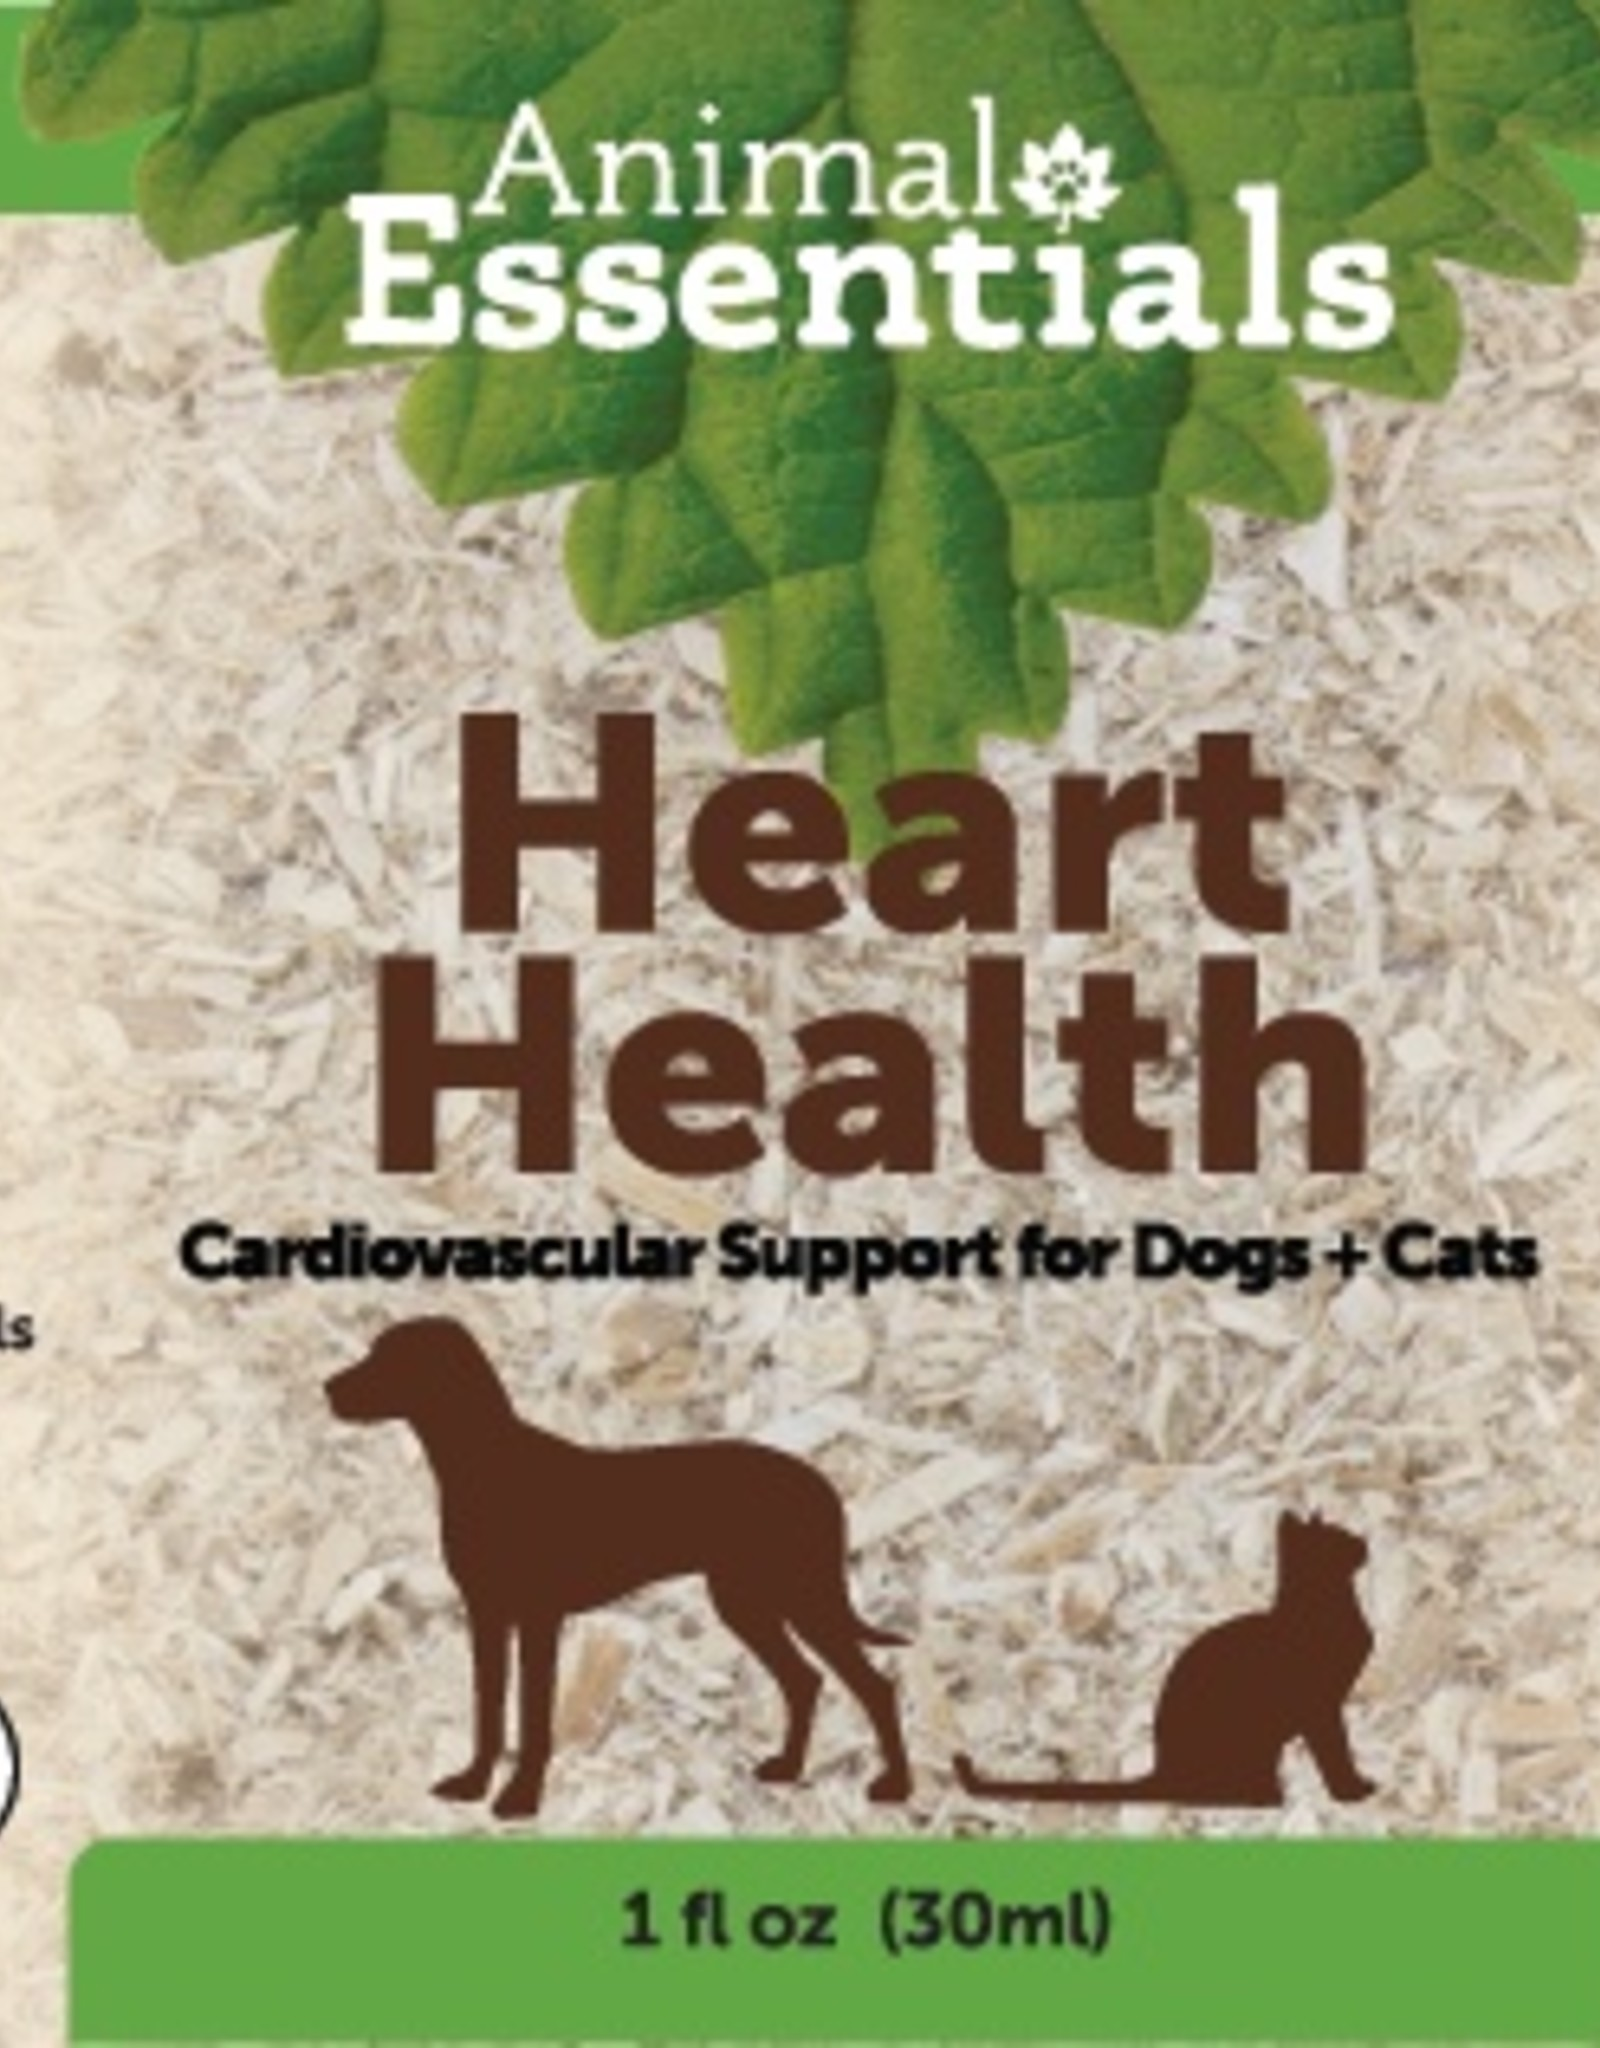 Animal Essentials Animal Essentials Heart Health 1oz